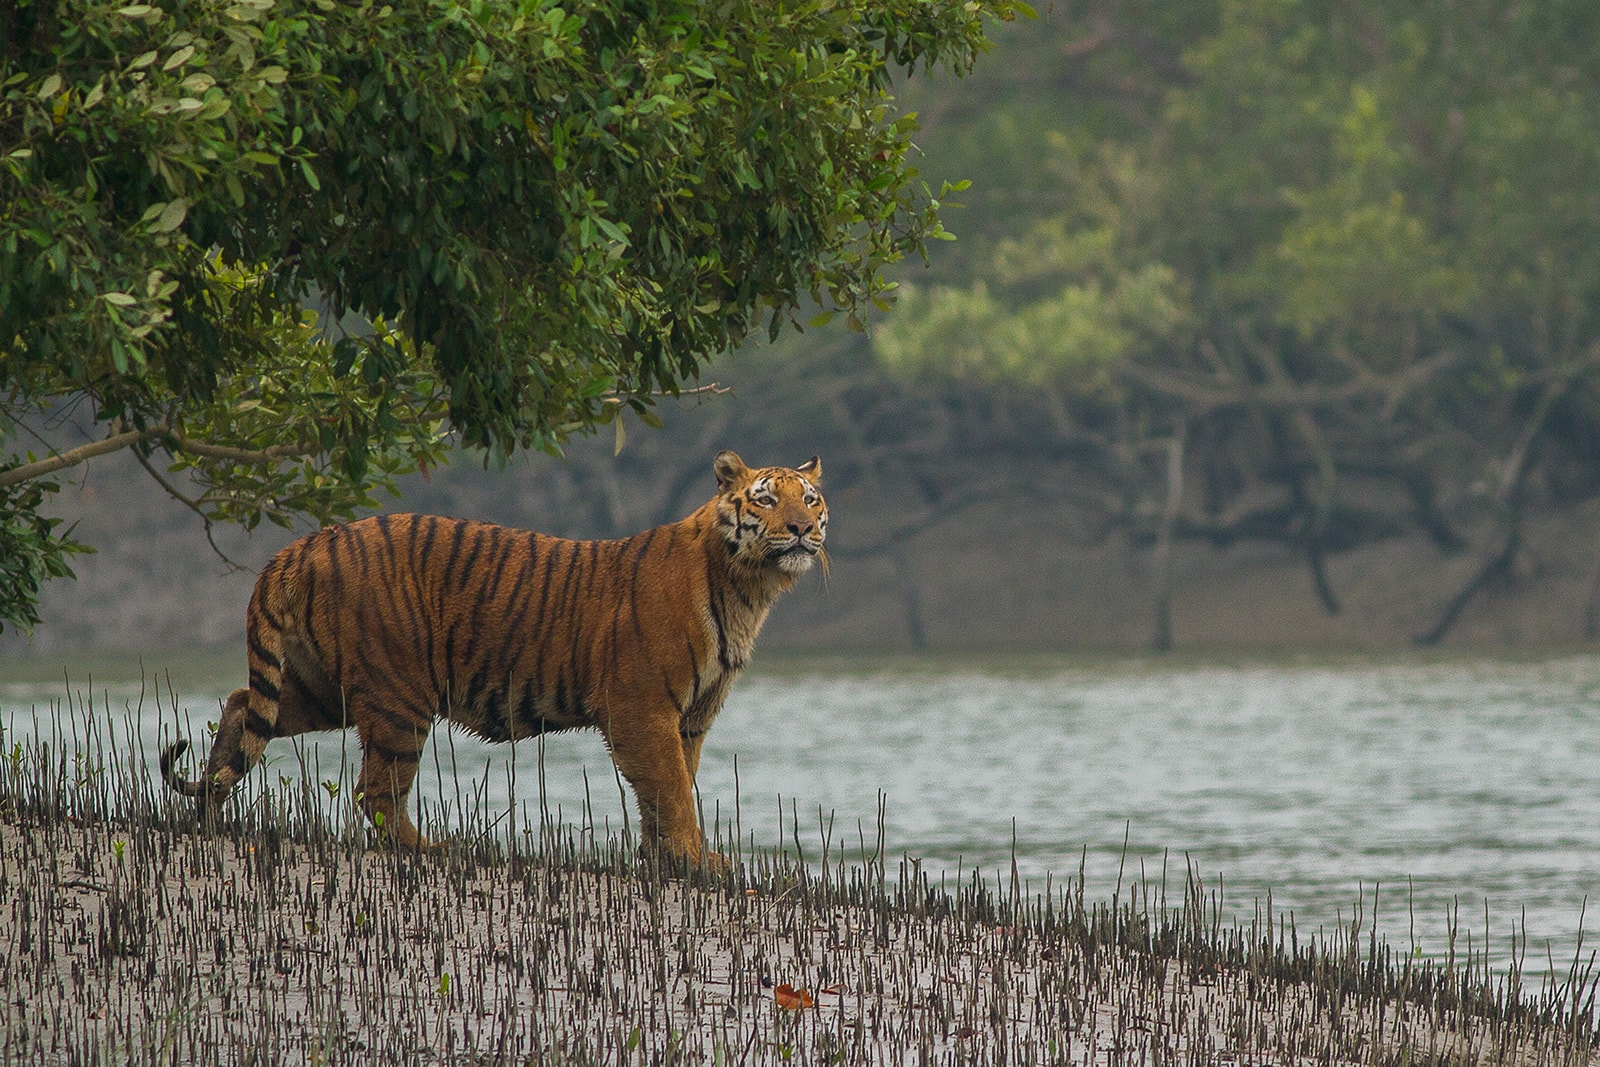 Animals in India, where to observe wild animals?